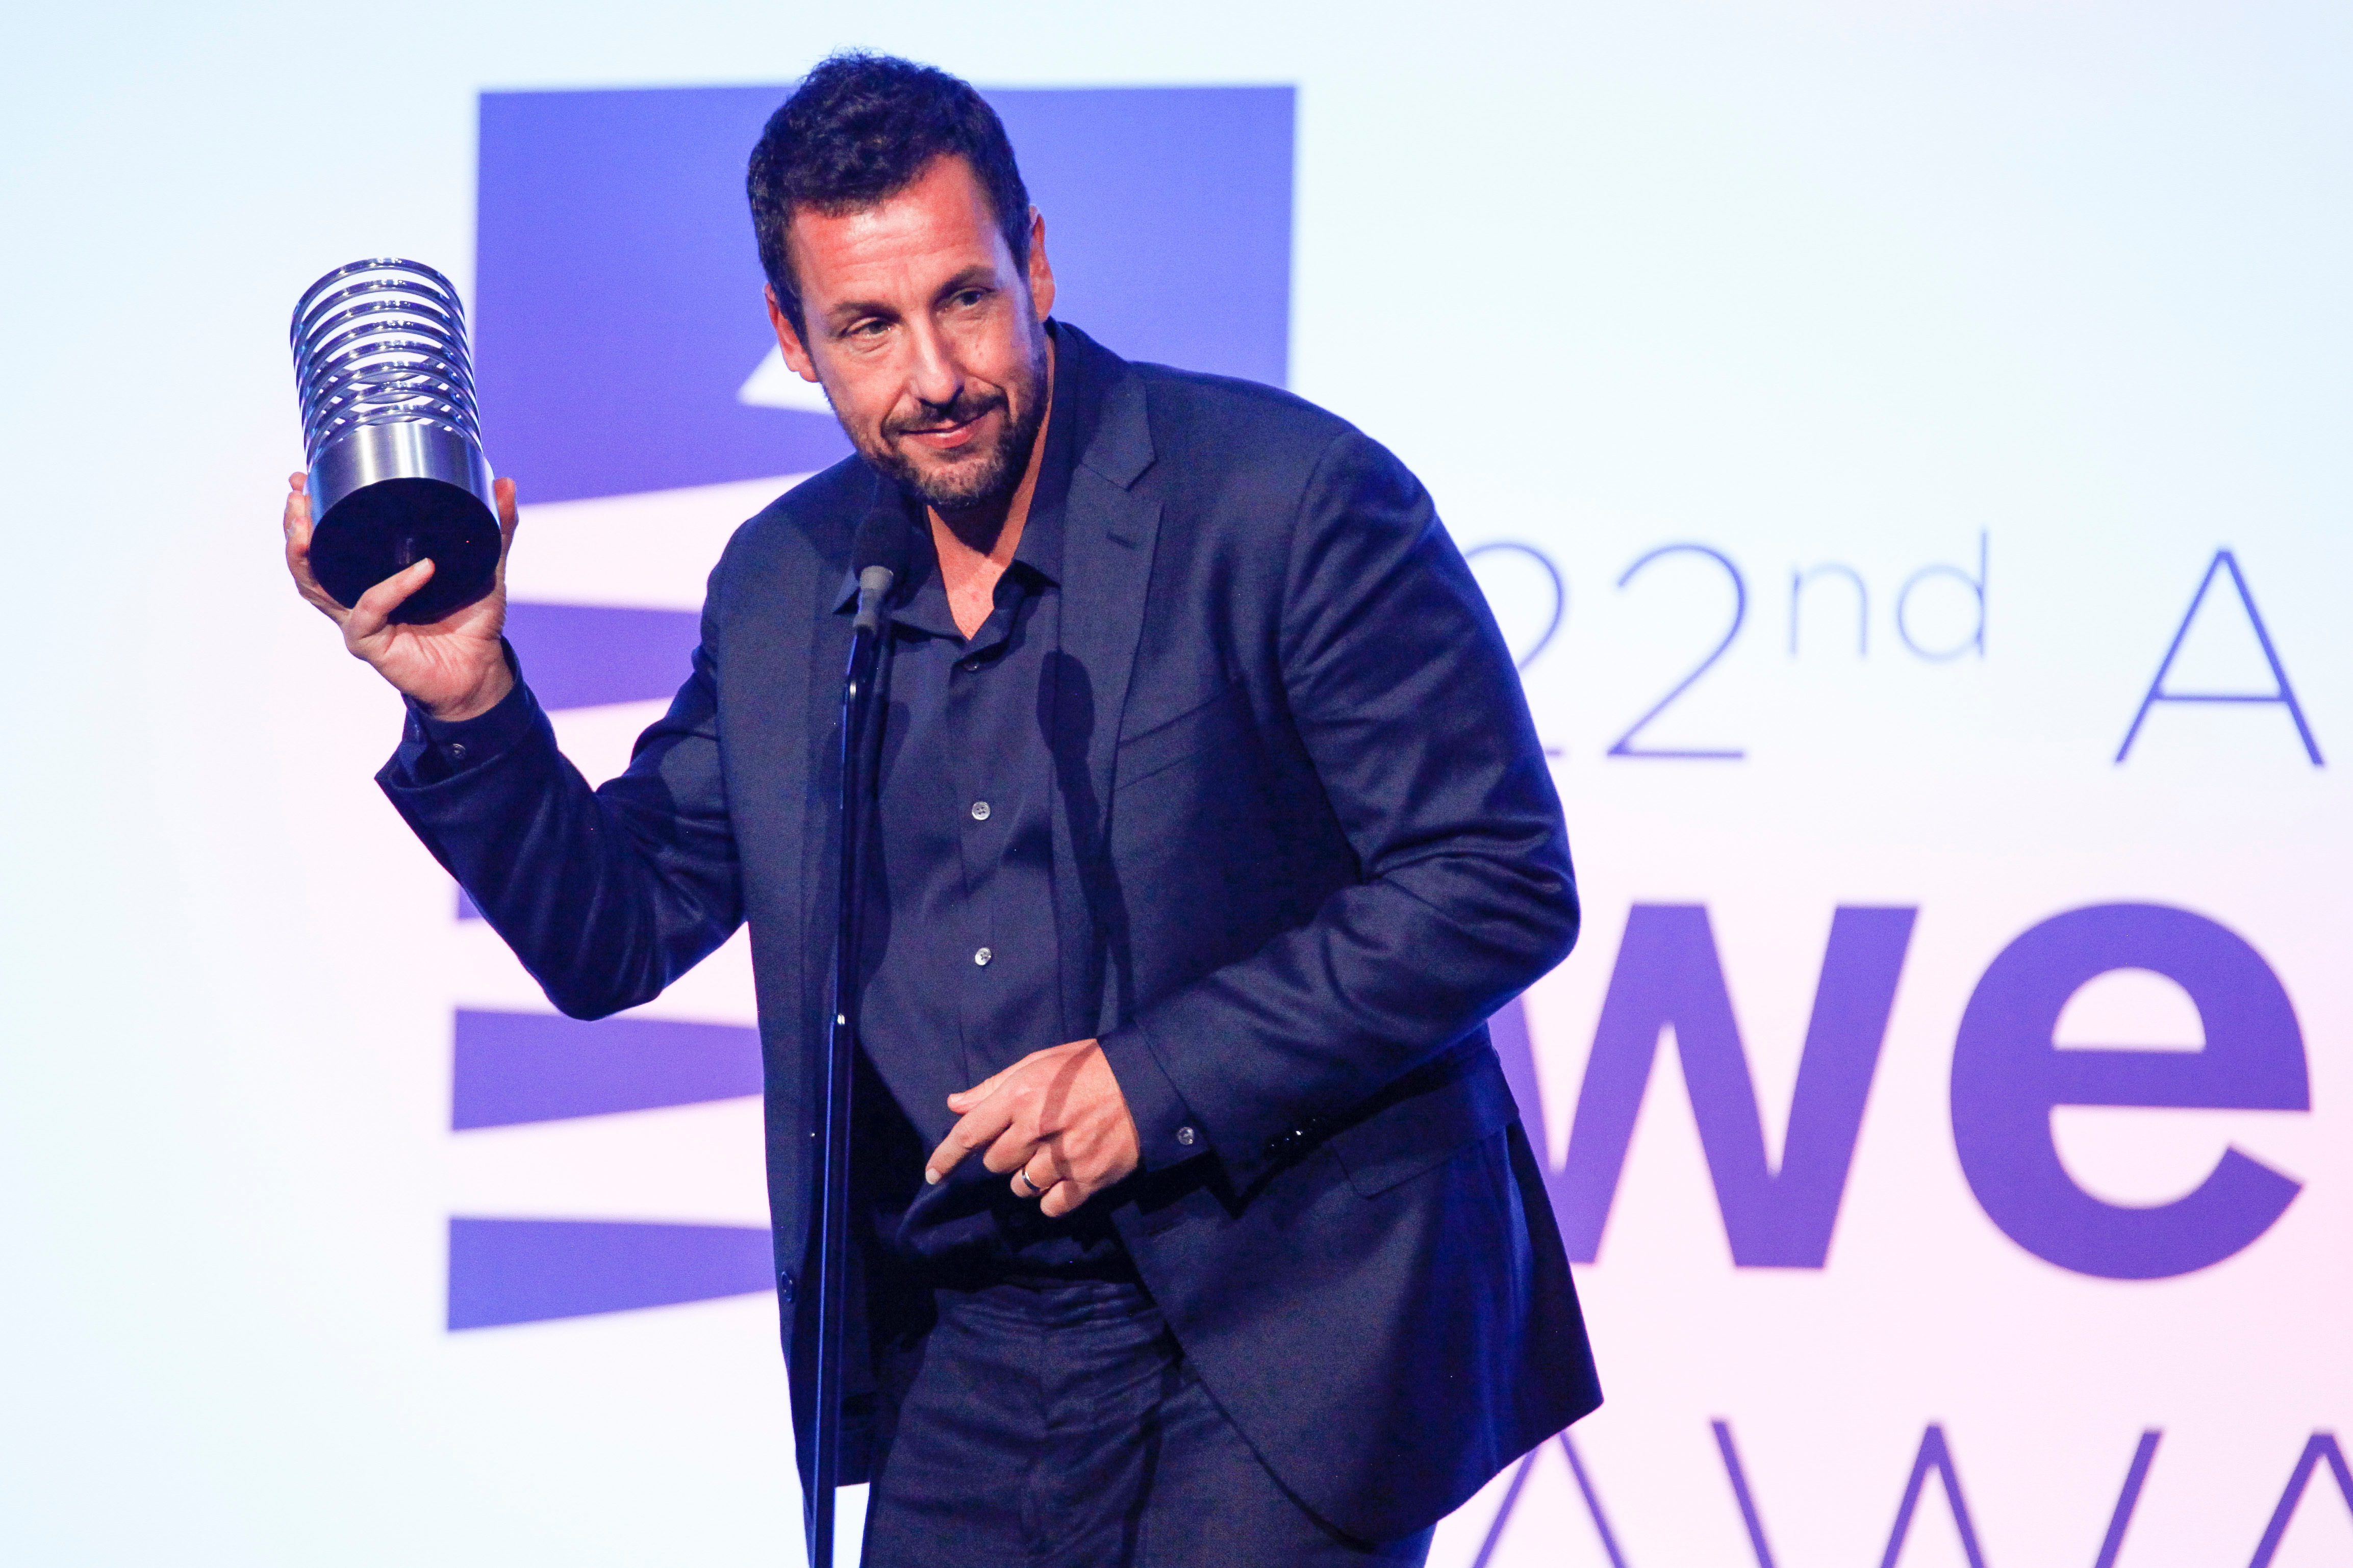 Adam Sandler attends the 22nd Annual Webby Awards at Cipriani Wall Street in New York City on May 14, 2018.